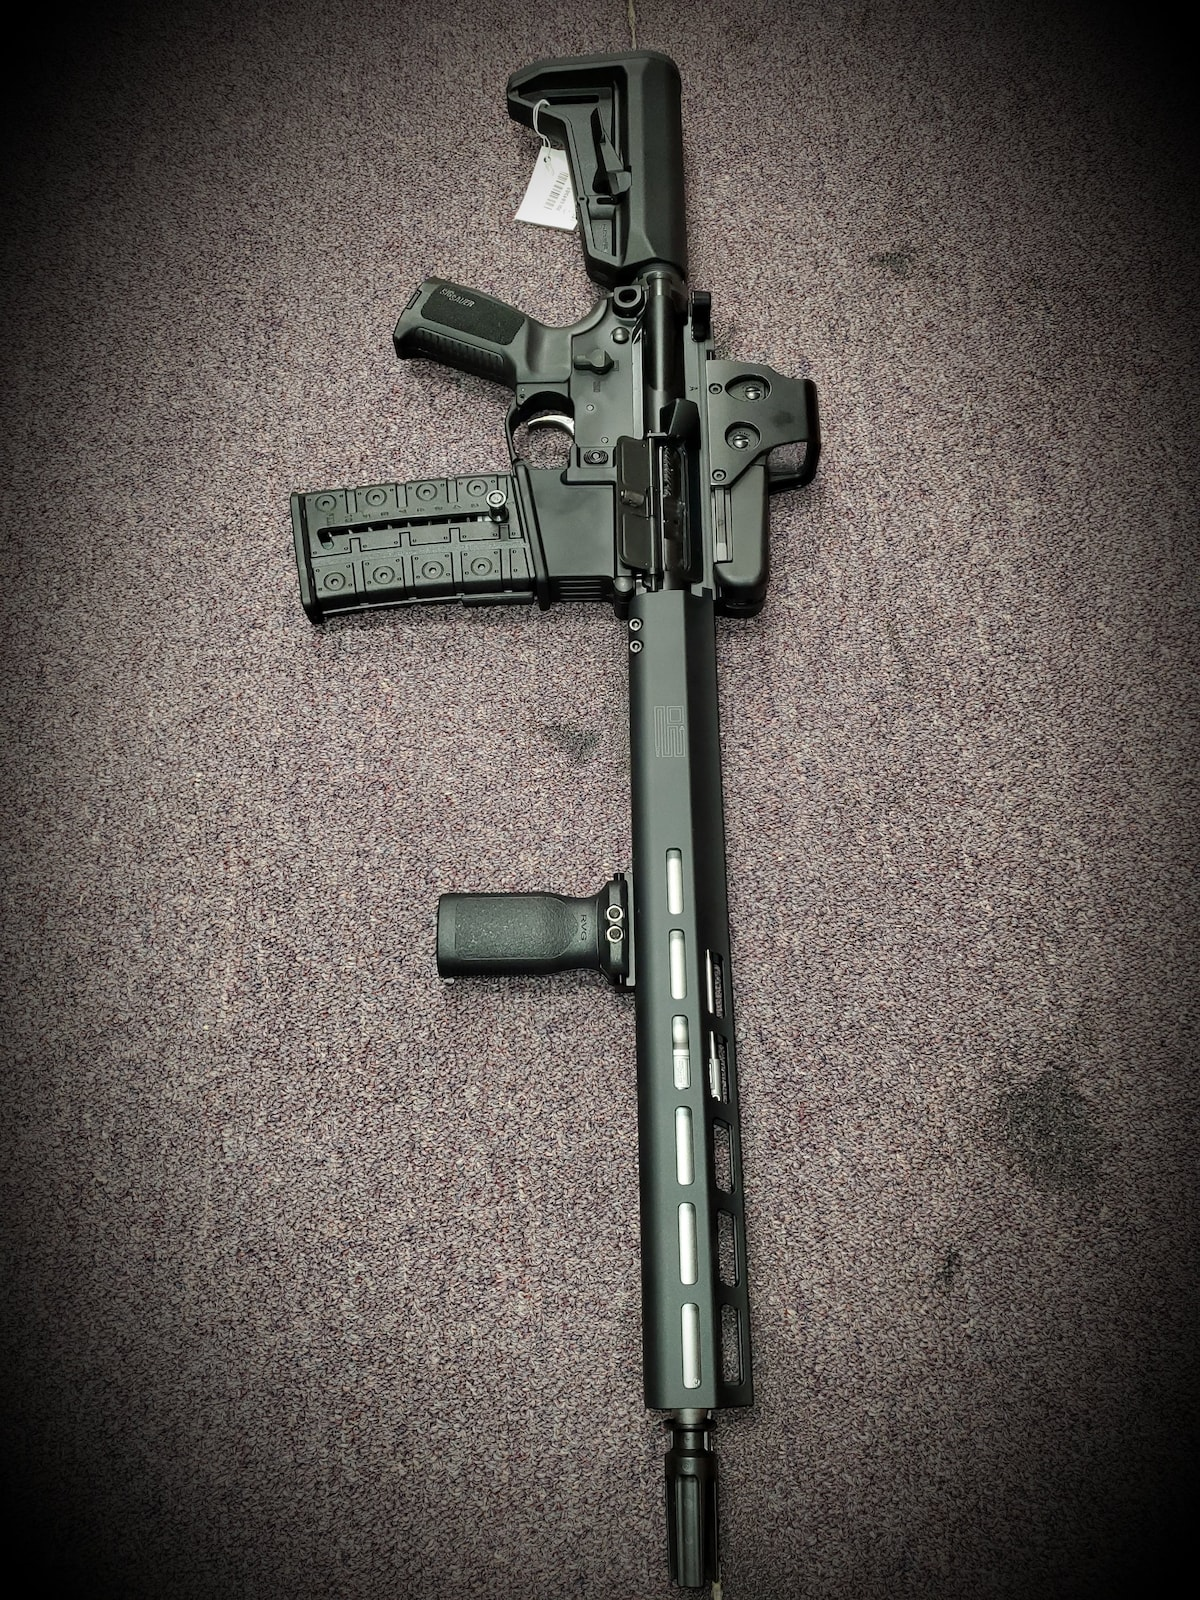 SIG SAUER FIXED MAGAZINE M400 AR15 M4 SIG SAUER With full package